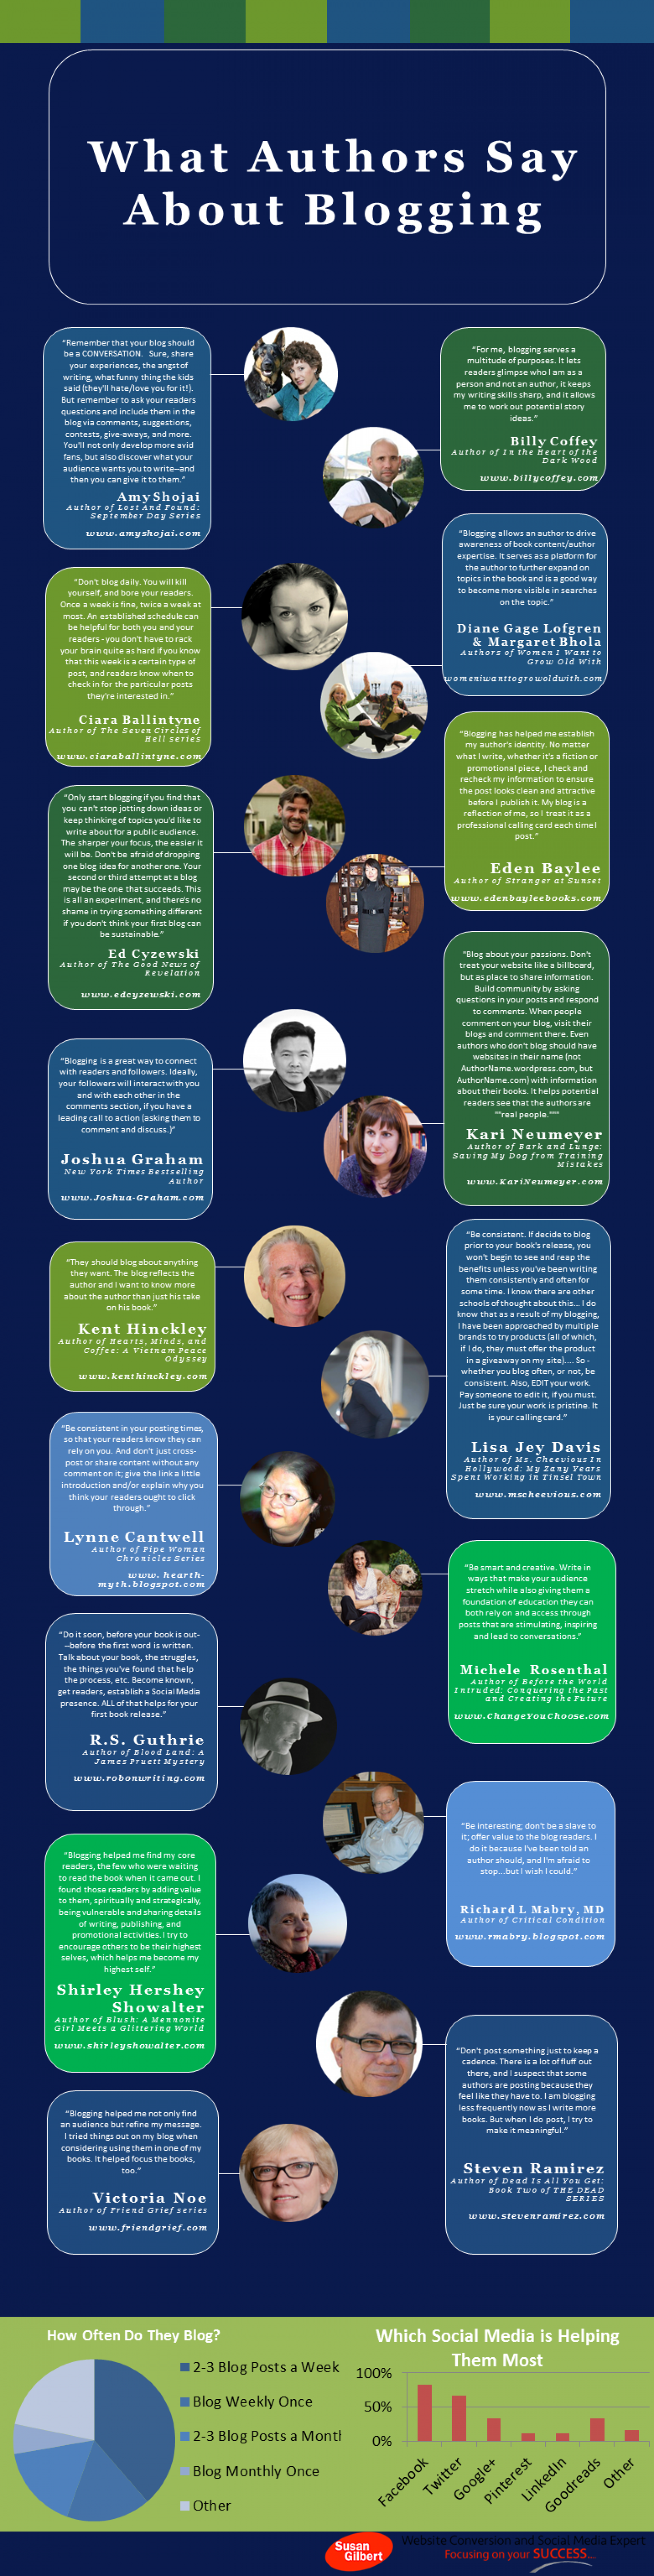 What Authors Say About Blogging Infographic